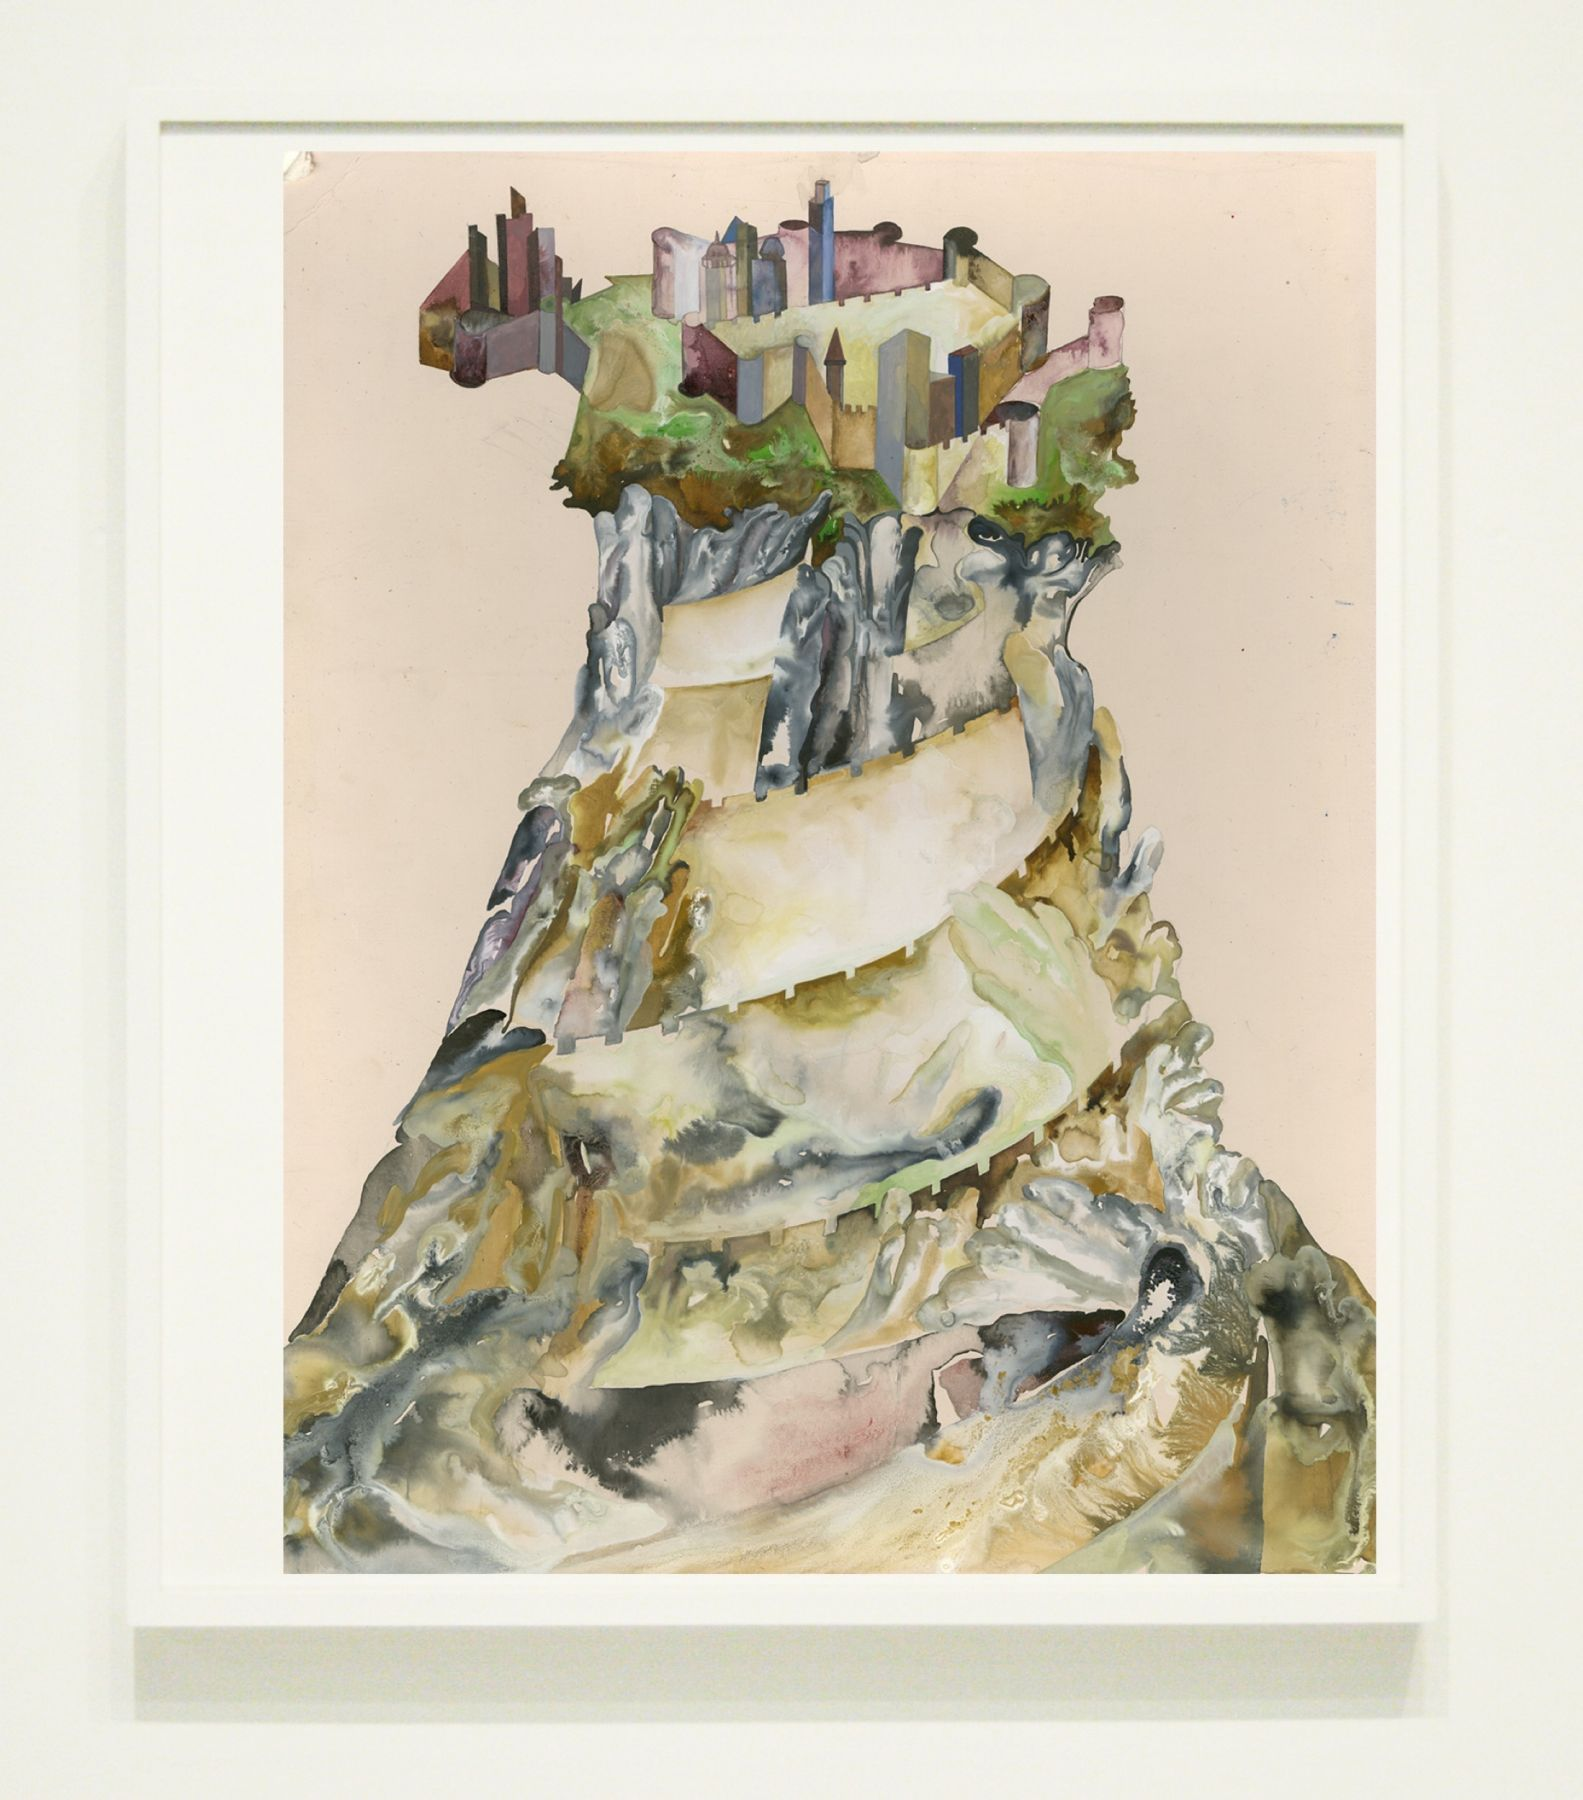 Shahzia Sikander Tower of Babel II, 2015-16